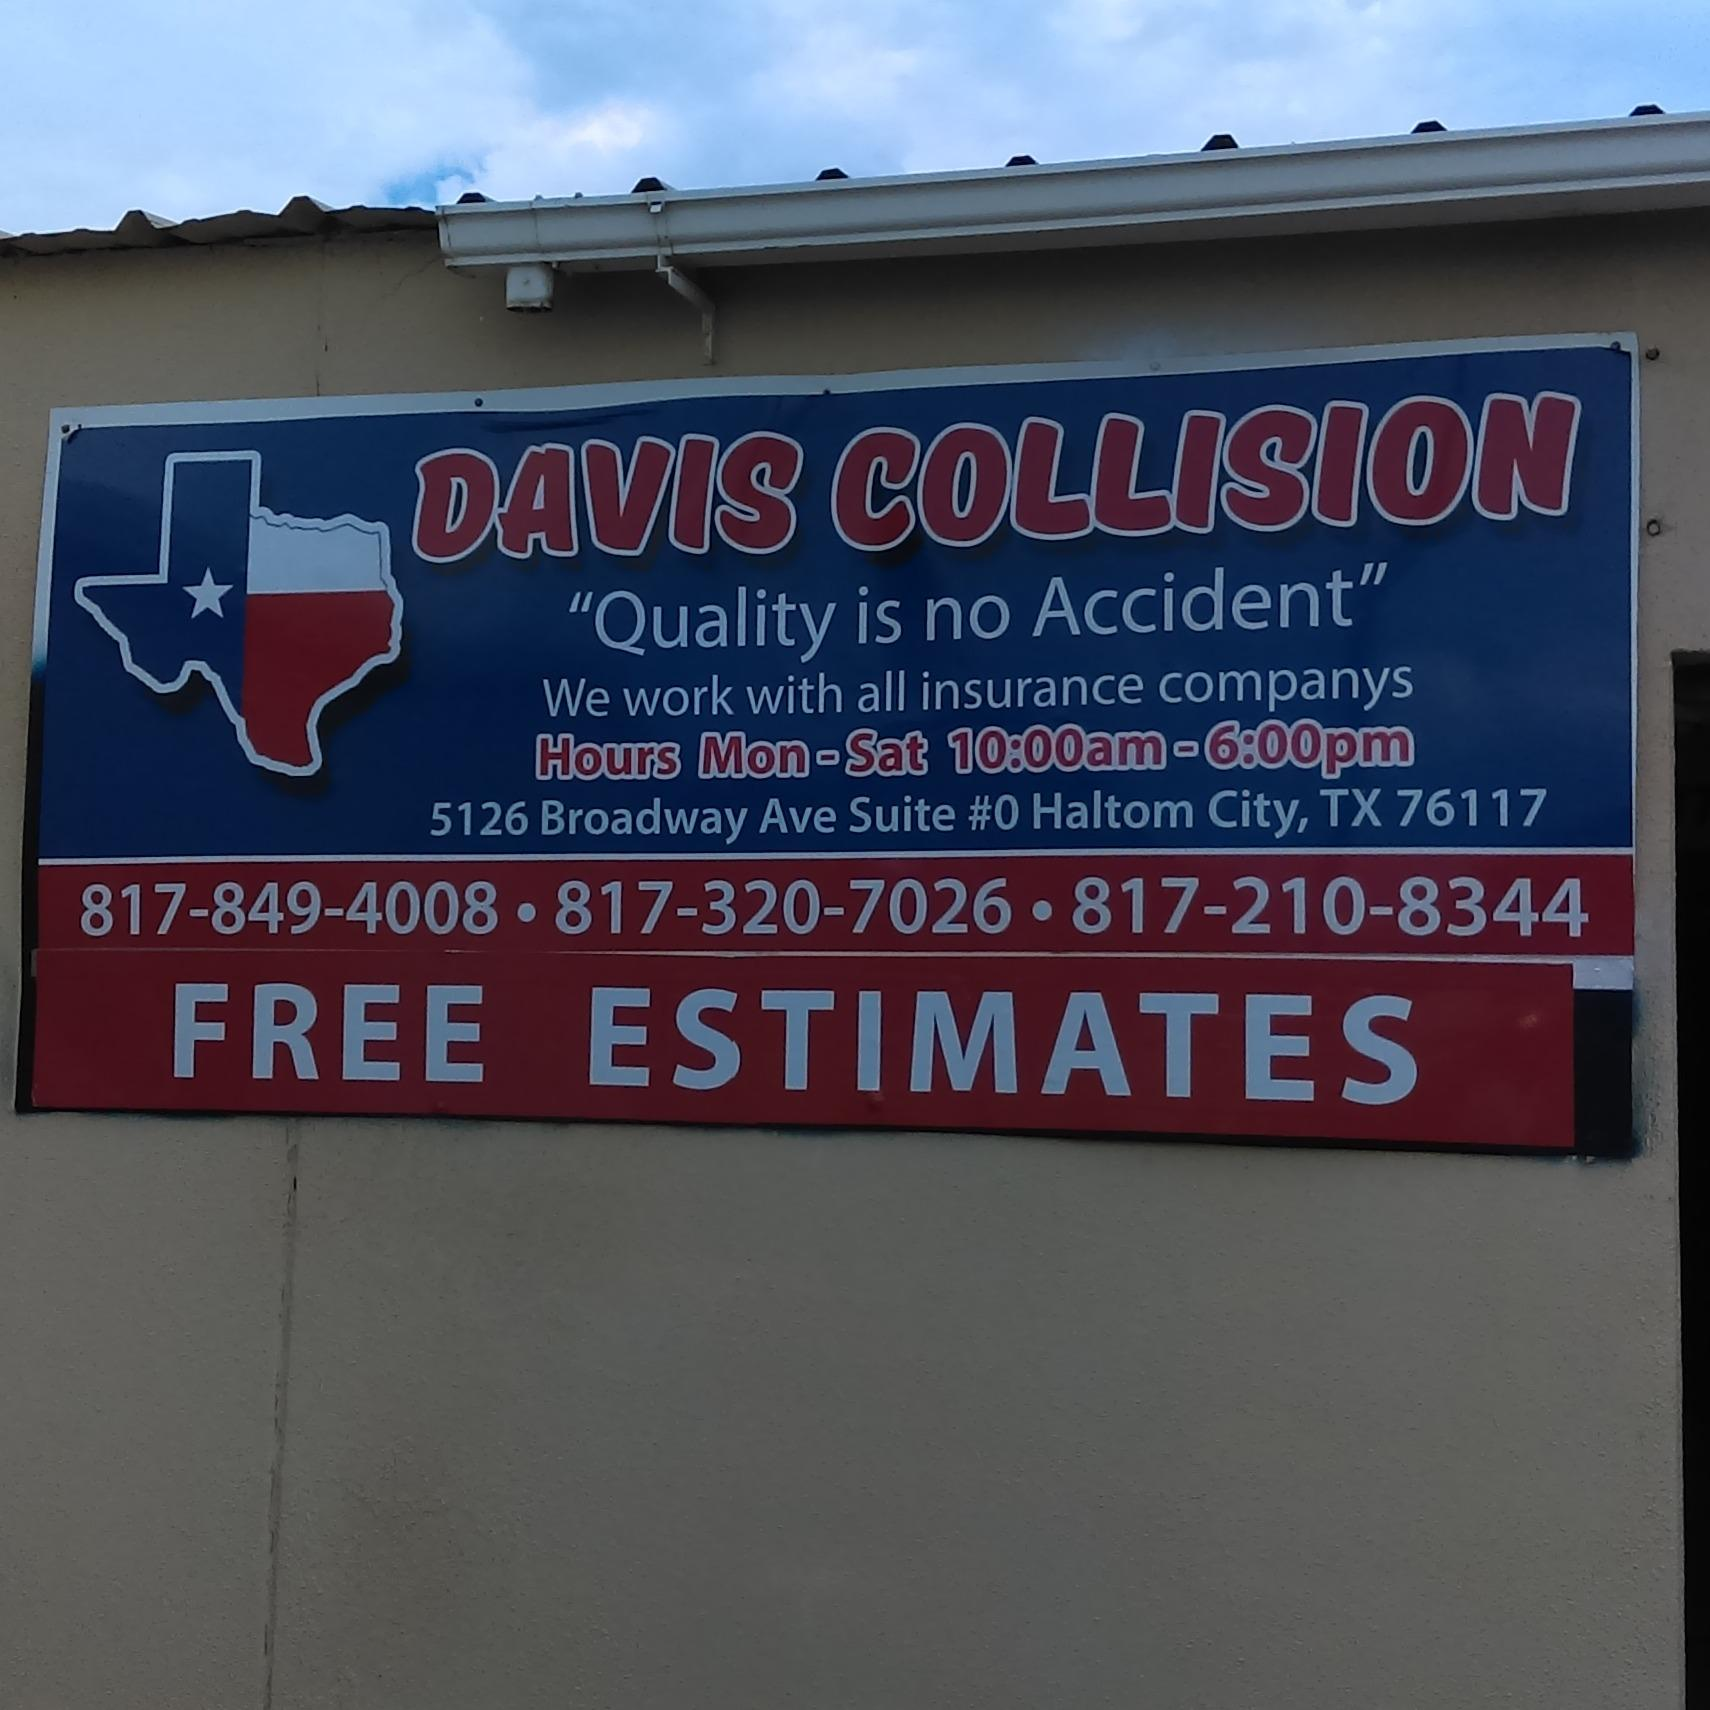 image of the Davis Collision Center